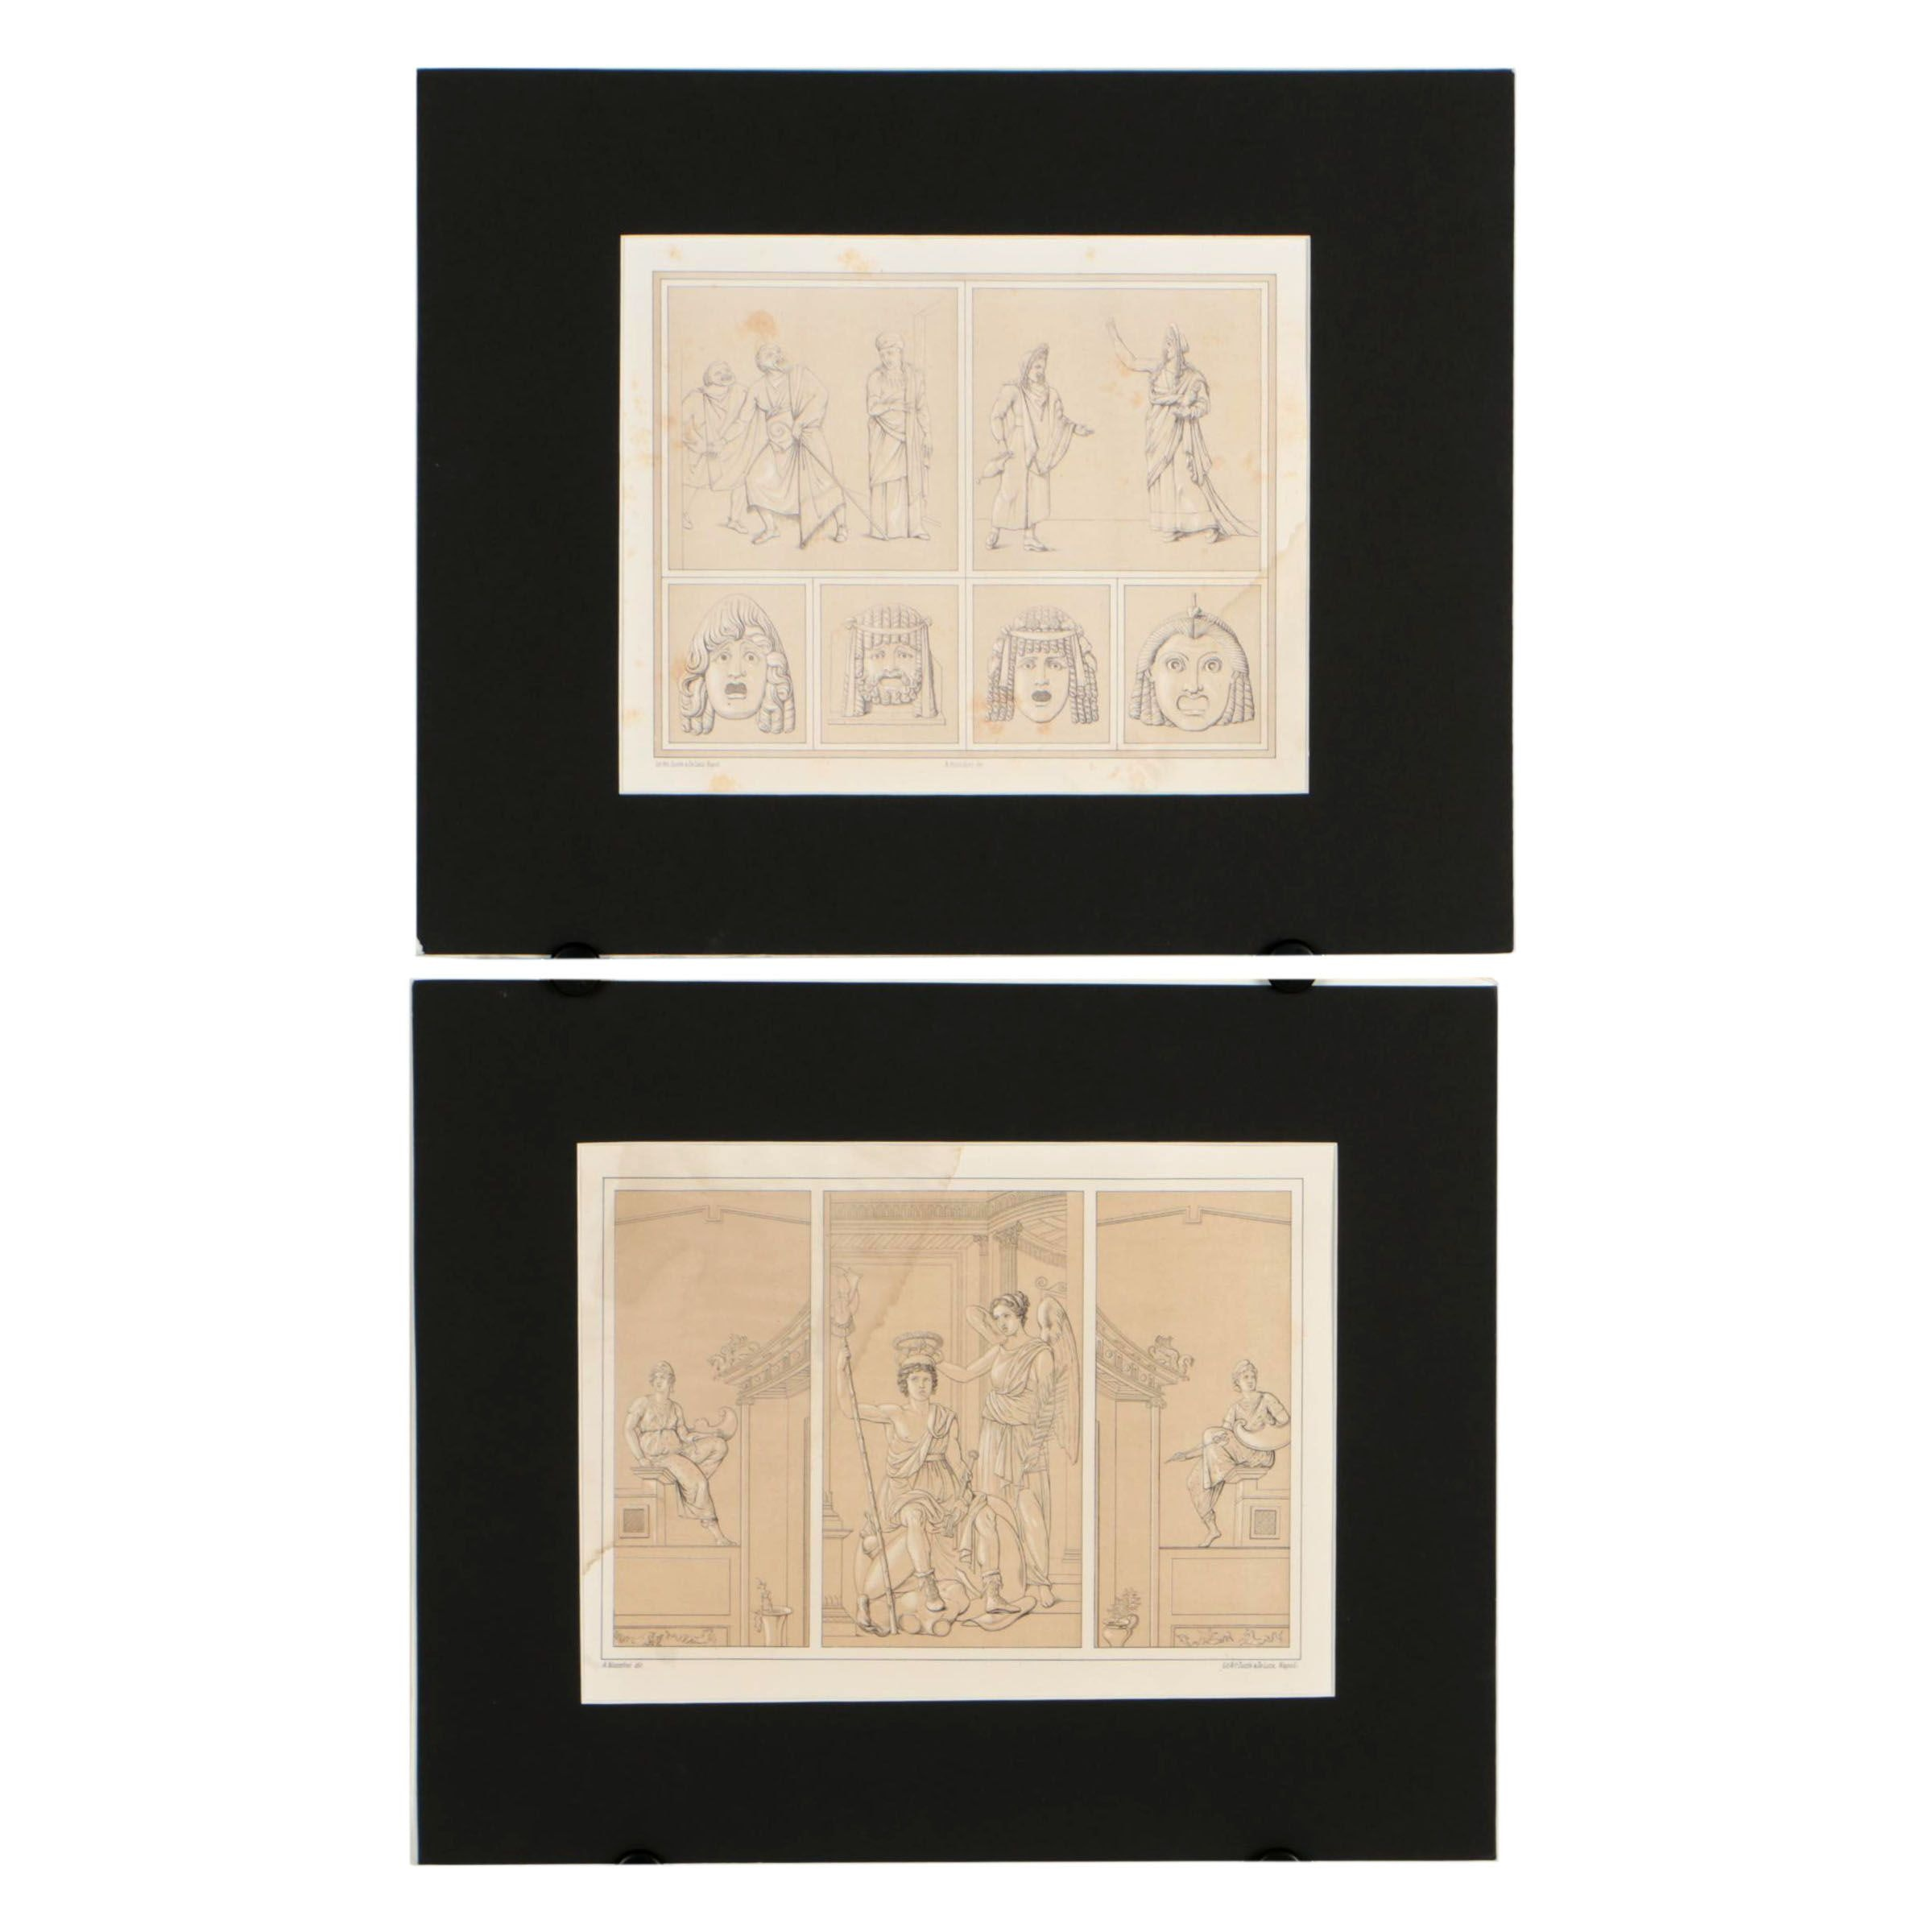 "Lithographs from Antonio Niccolini's ""Pompeii: Views and Restorations"""